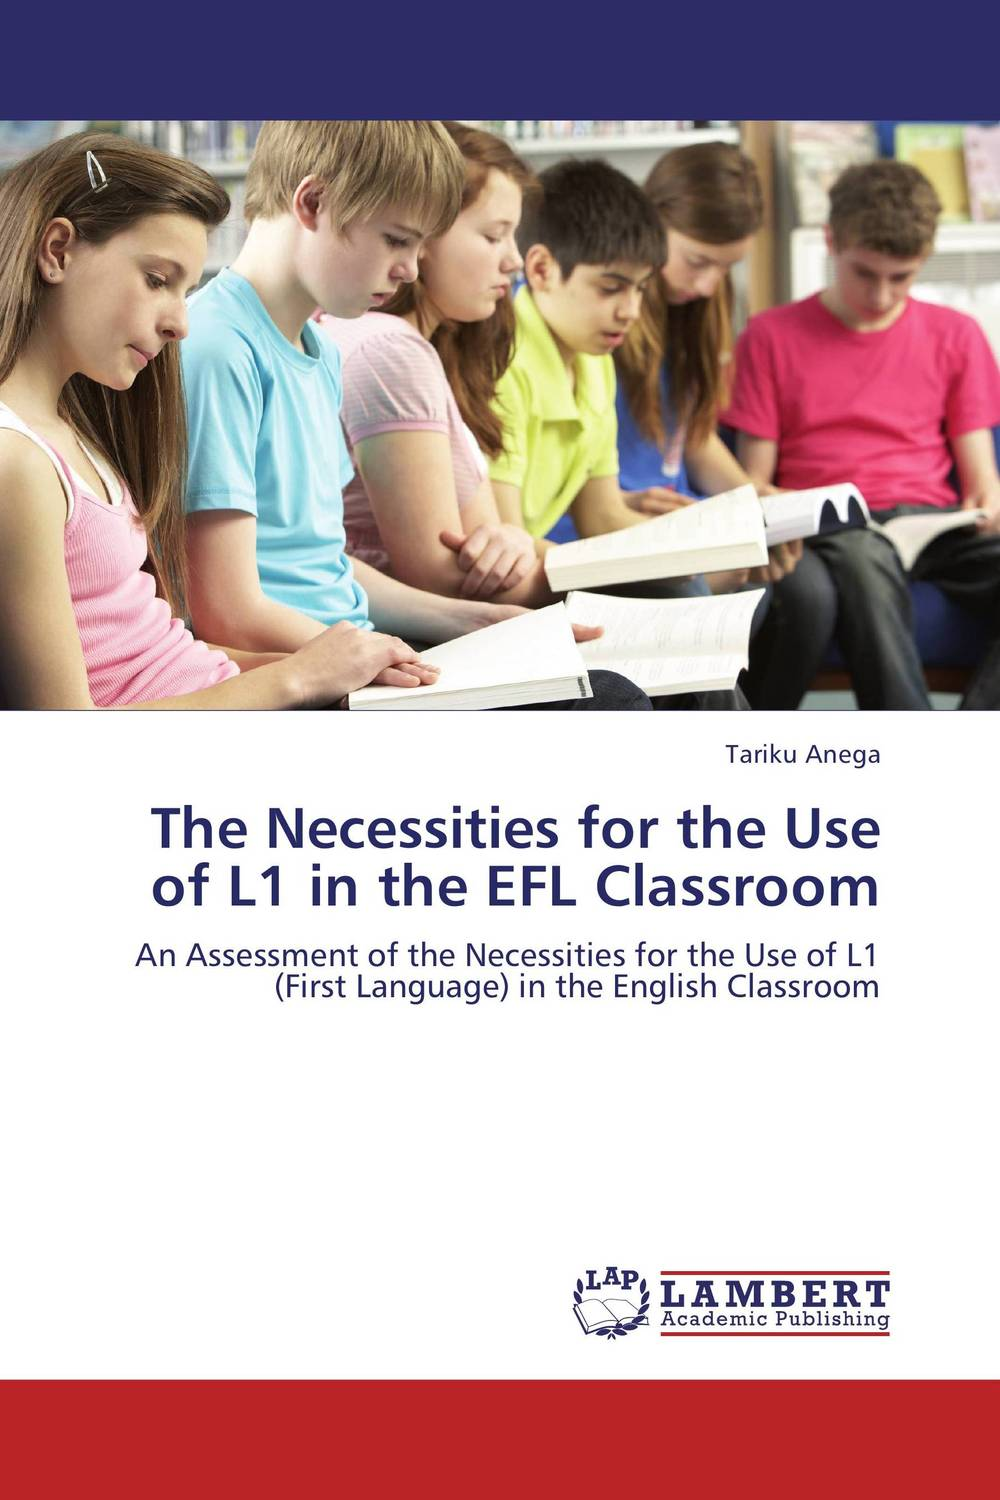 The Necessities for the Use of L1 in the EFL Classroom glynn s hughes handbook of classroom english